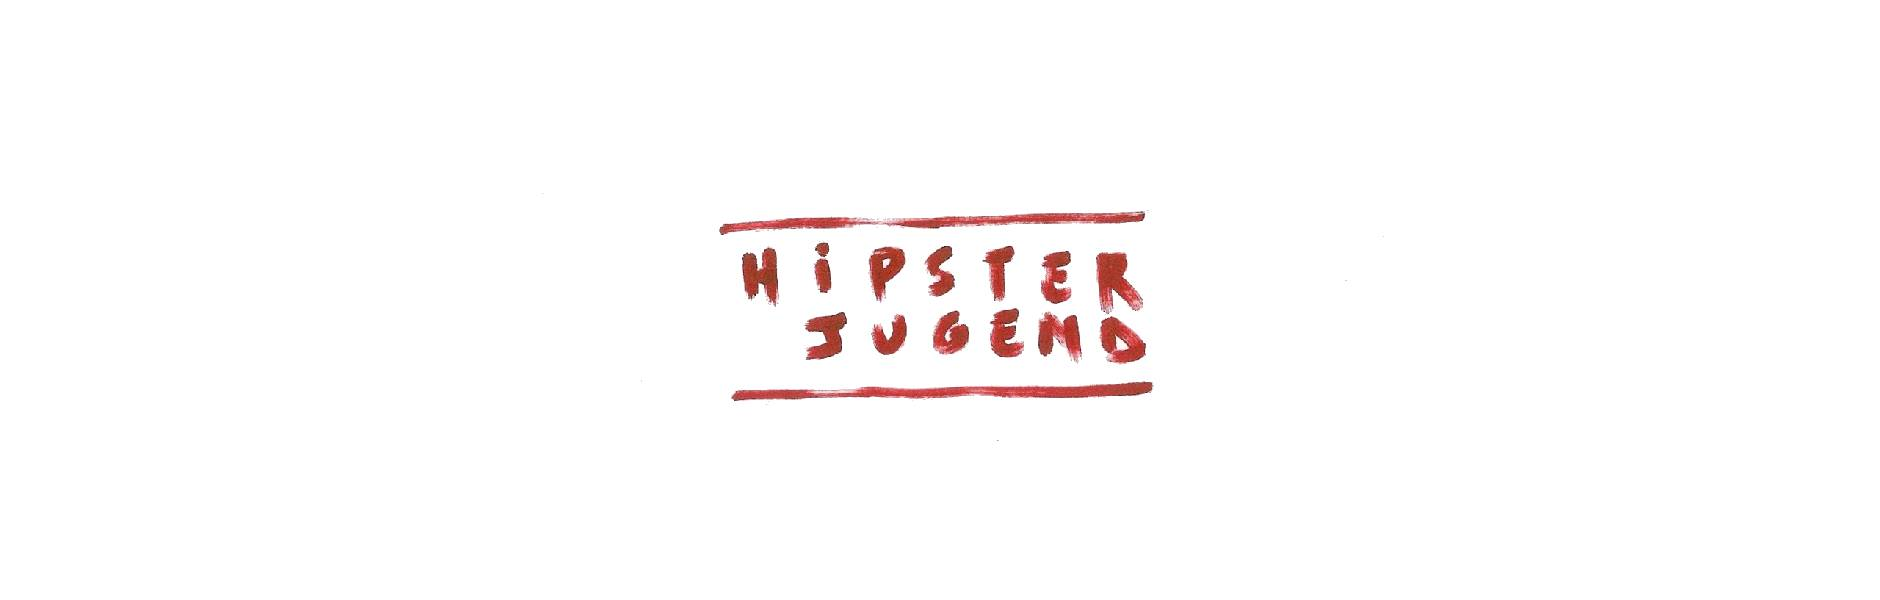 The Hipster Jugend